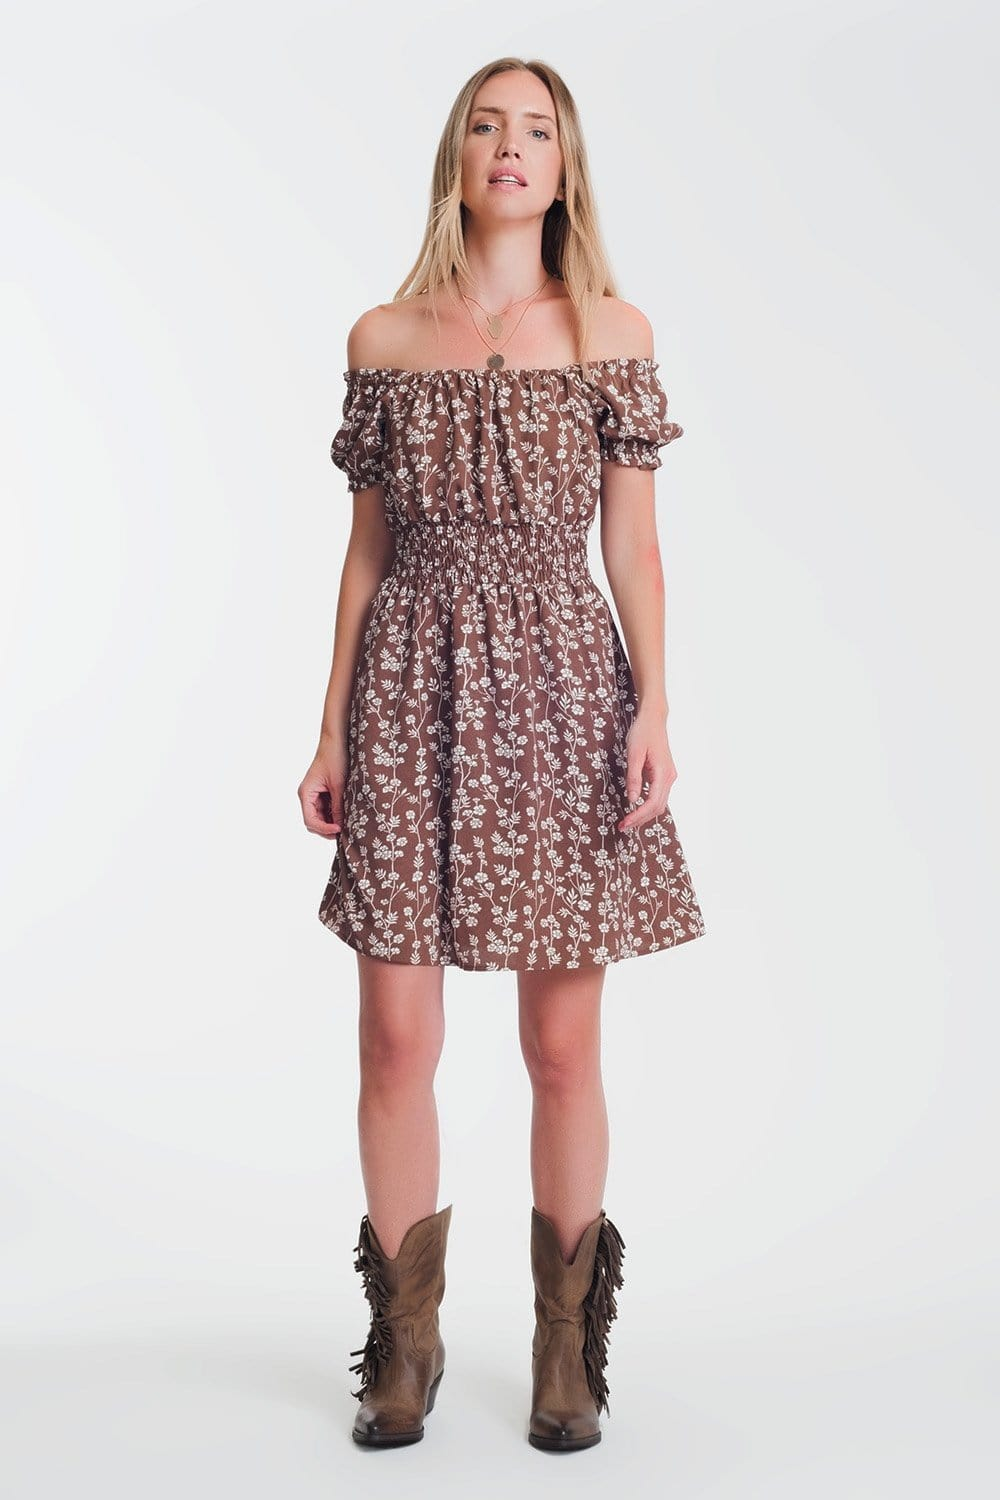 Q2 Brown mini bardot dress in floral print